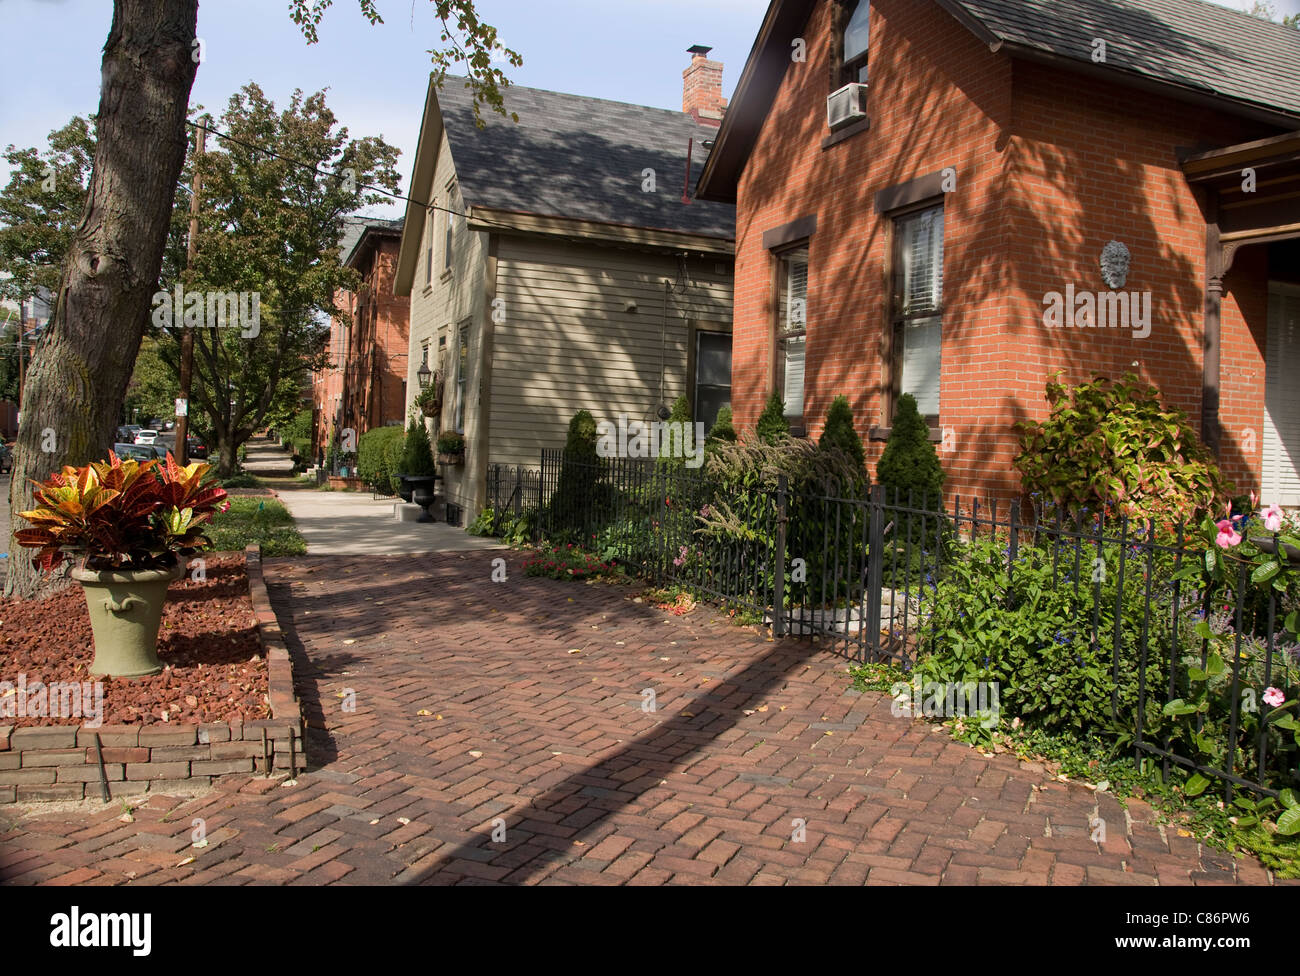 Historic Homes In The German Village Area Of Columbus